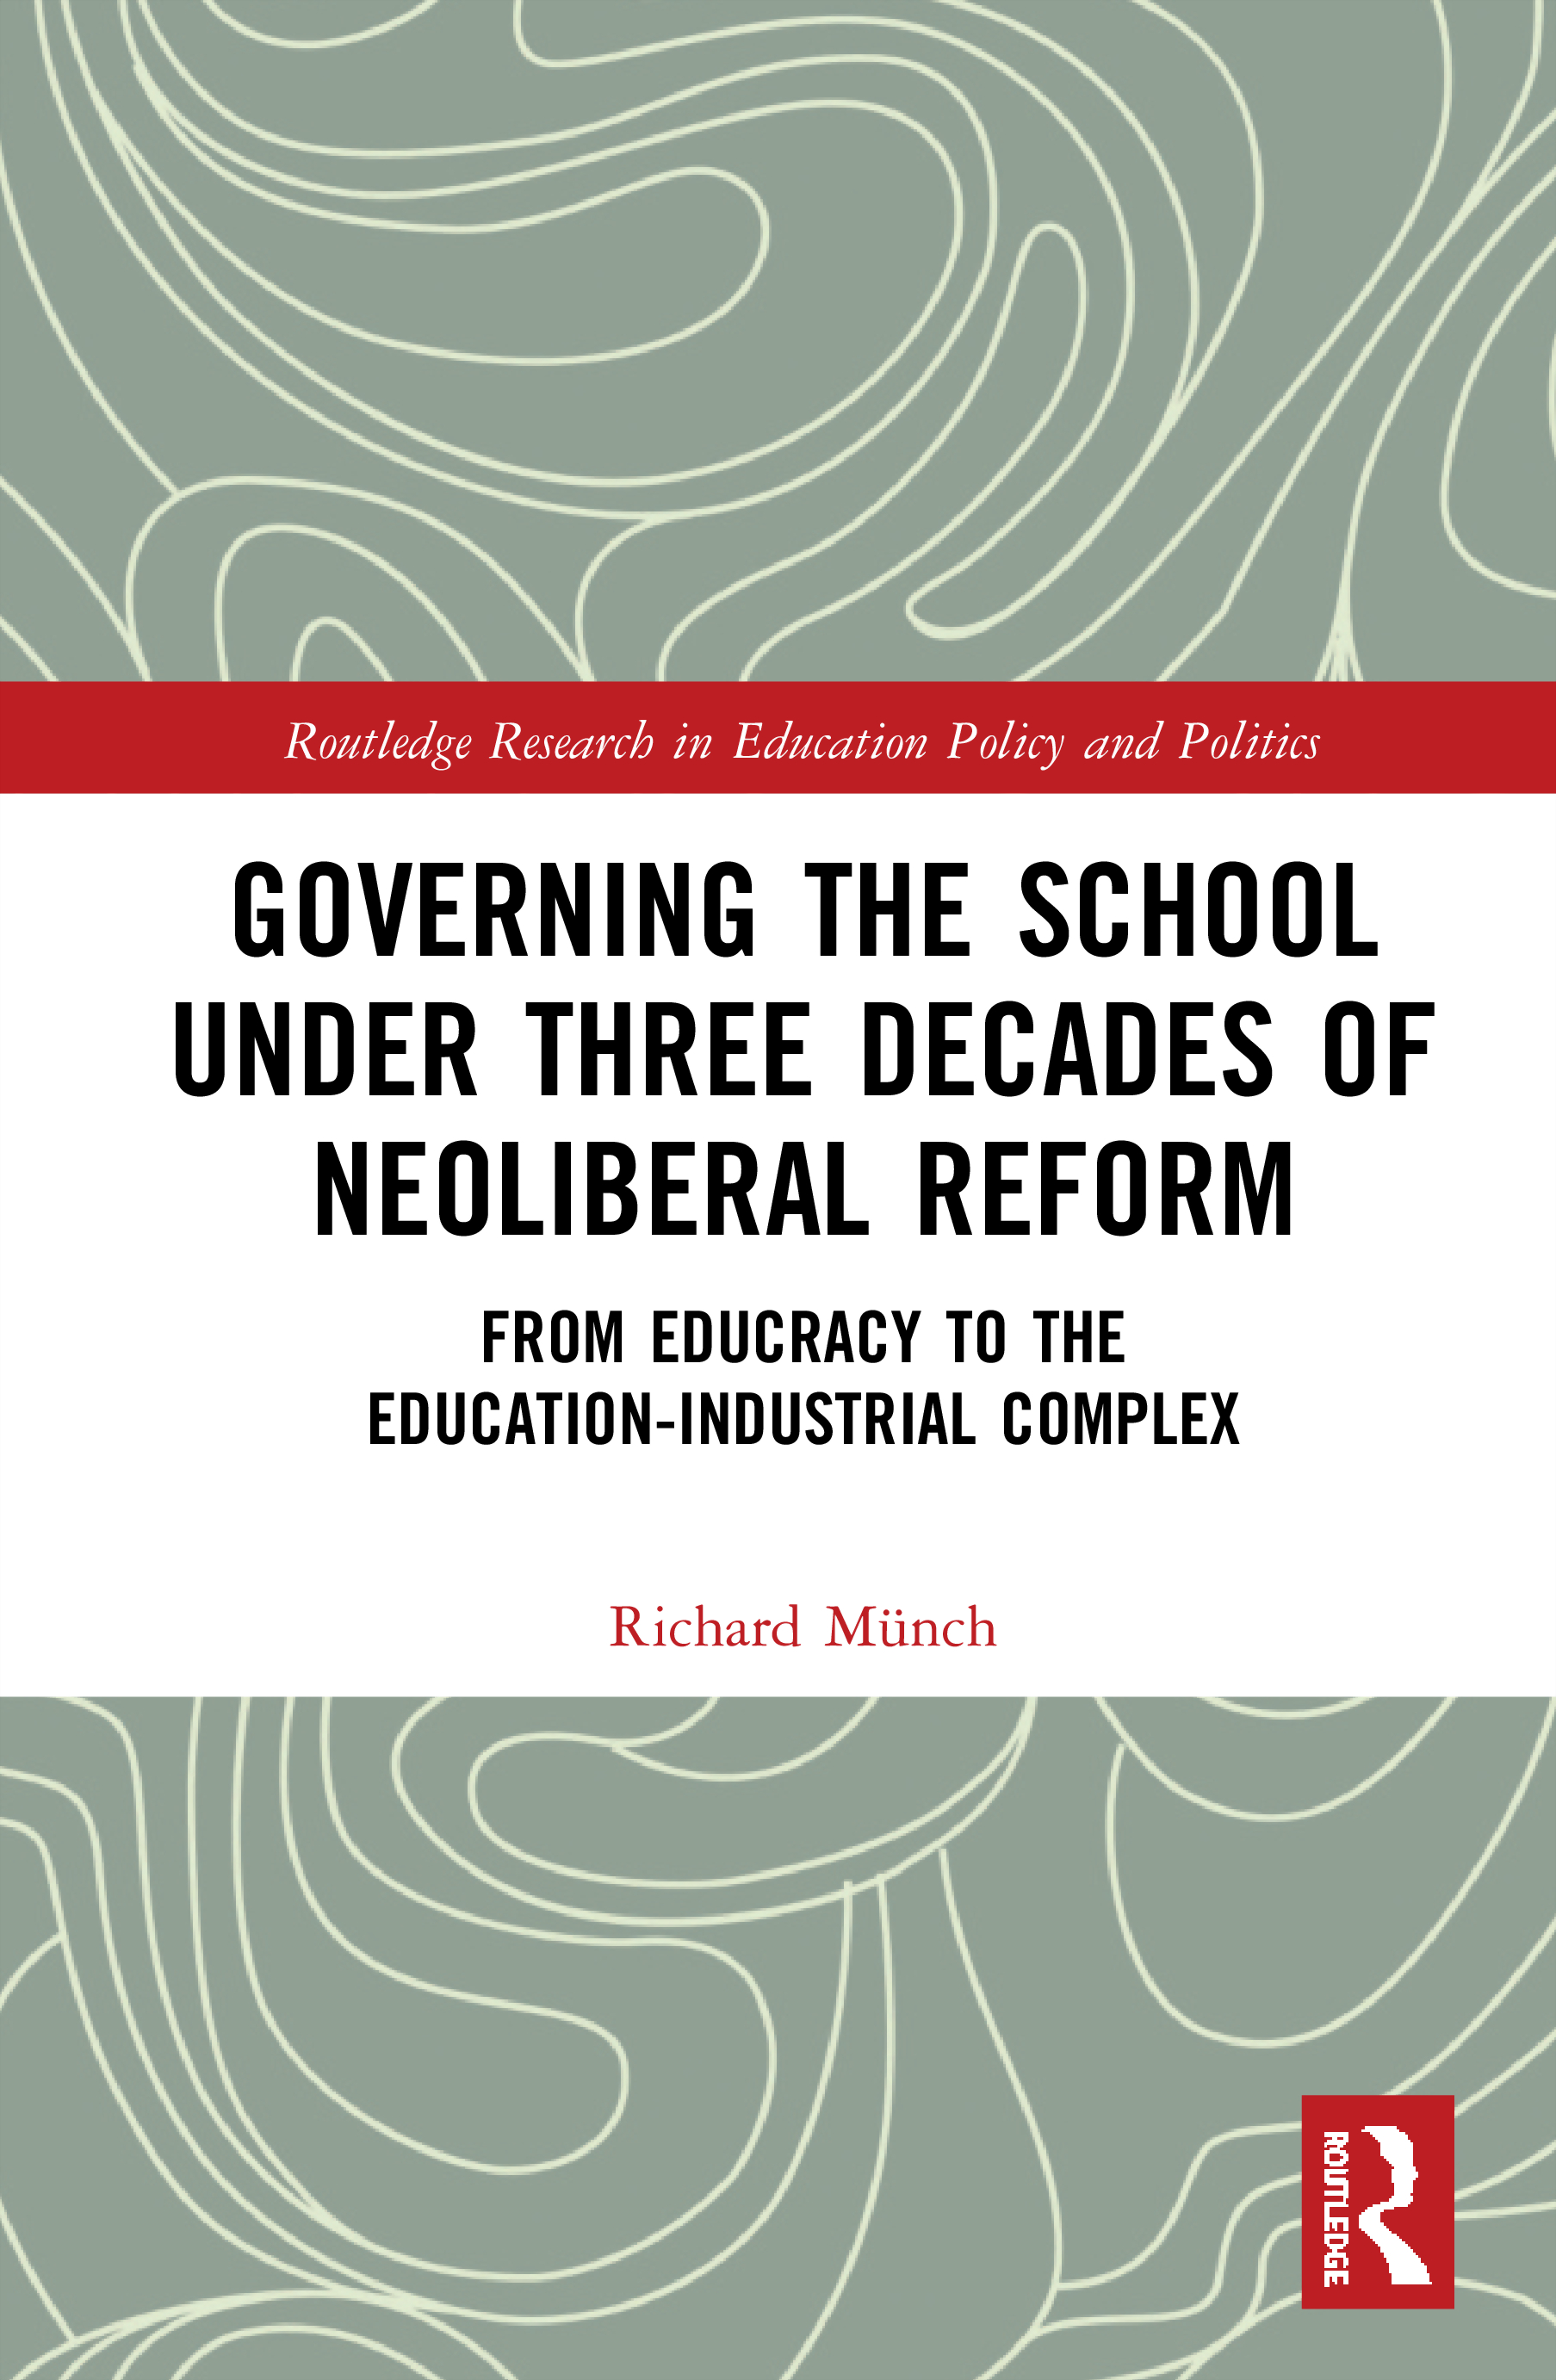 Governing the School under Three Decades of Neoliberal Reform: From Educracy to the Education-Industrial Complex book cover